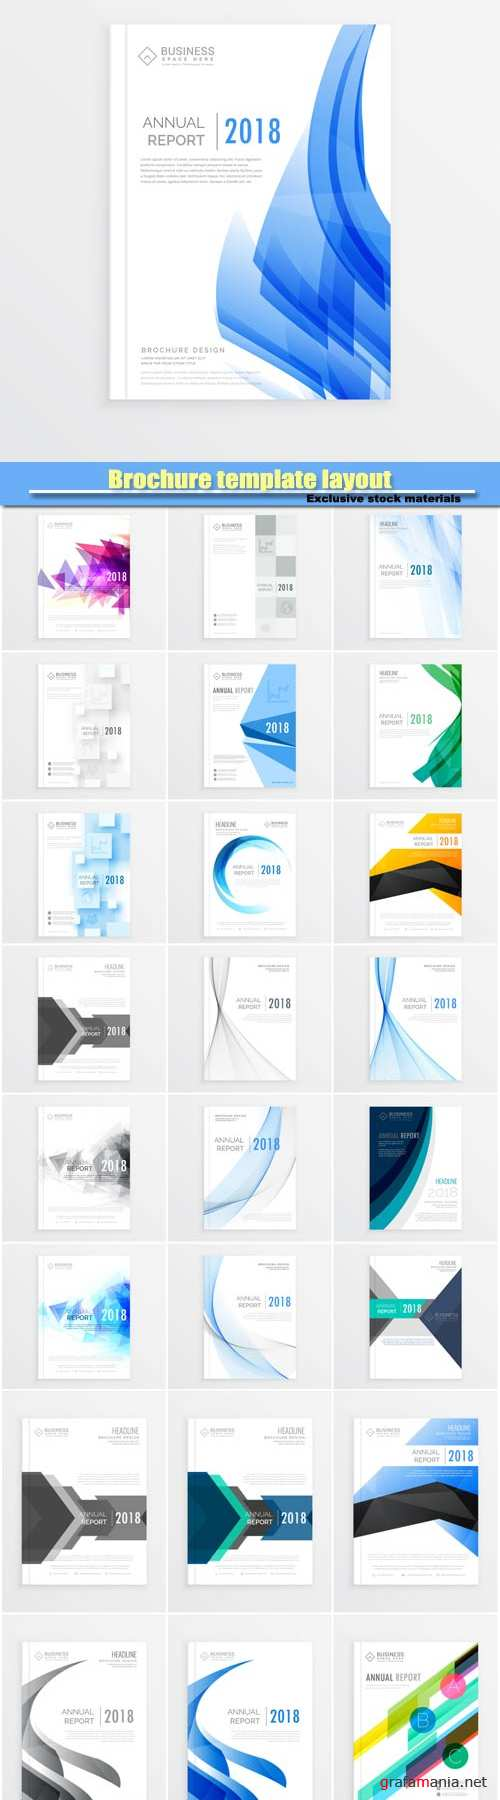 Brochure template layout, annual report cover design, magazine flyer design